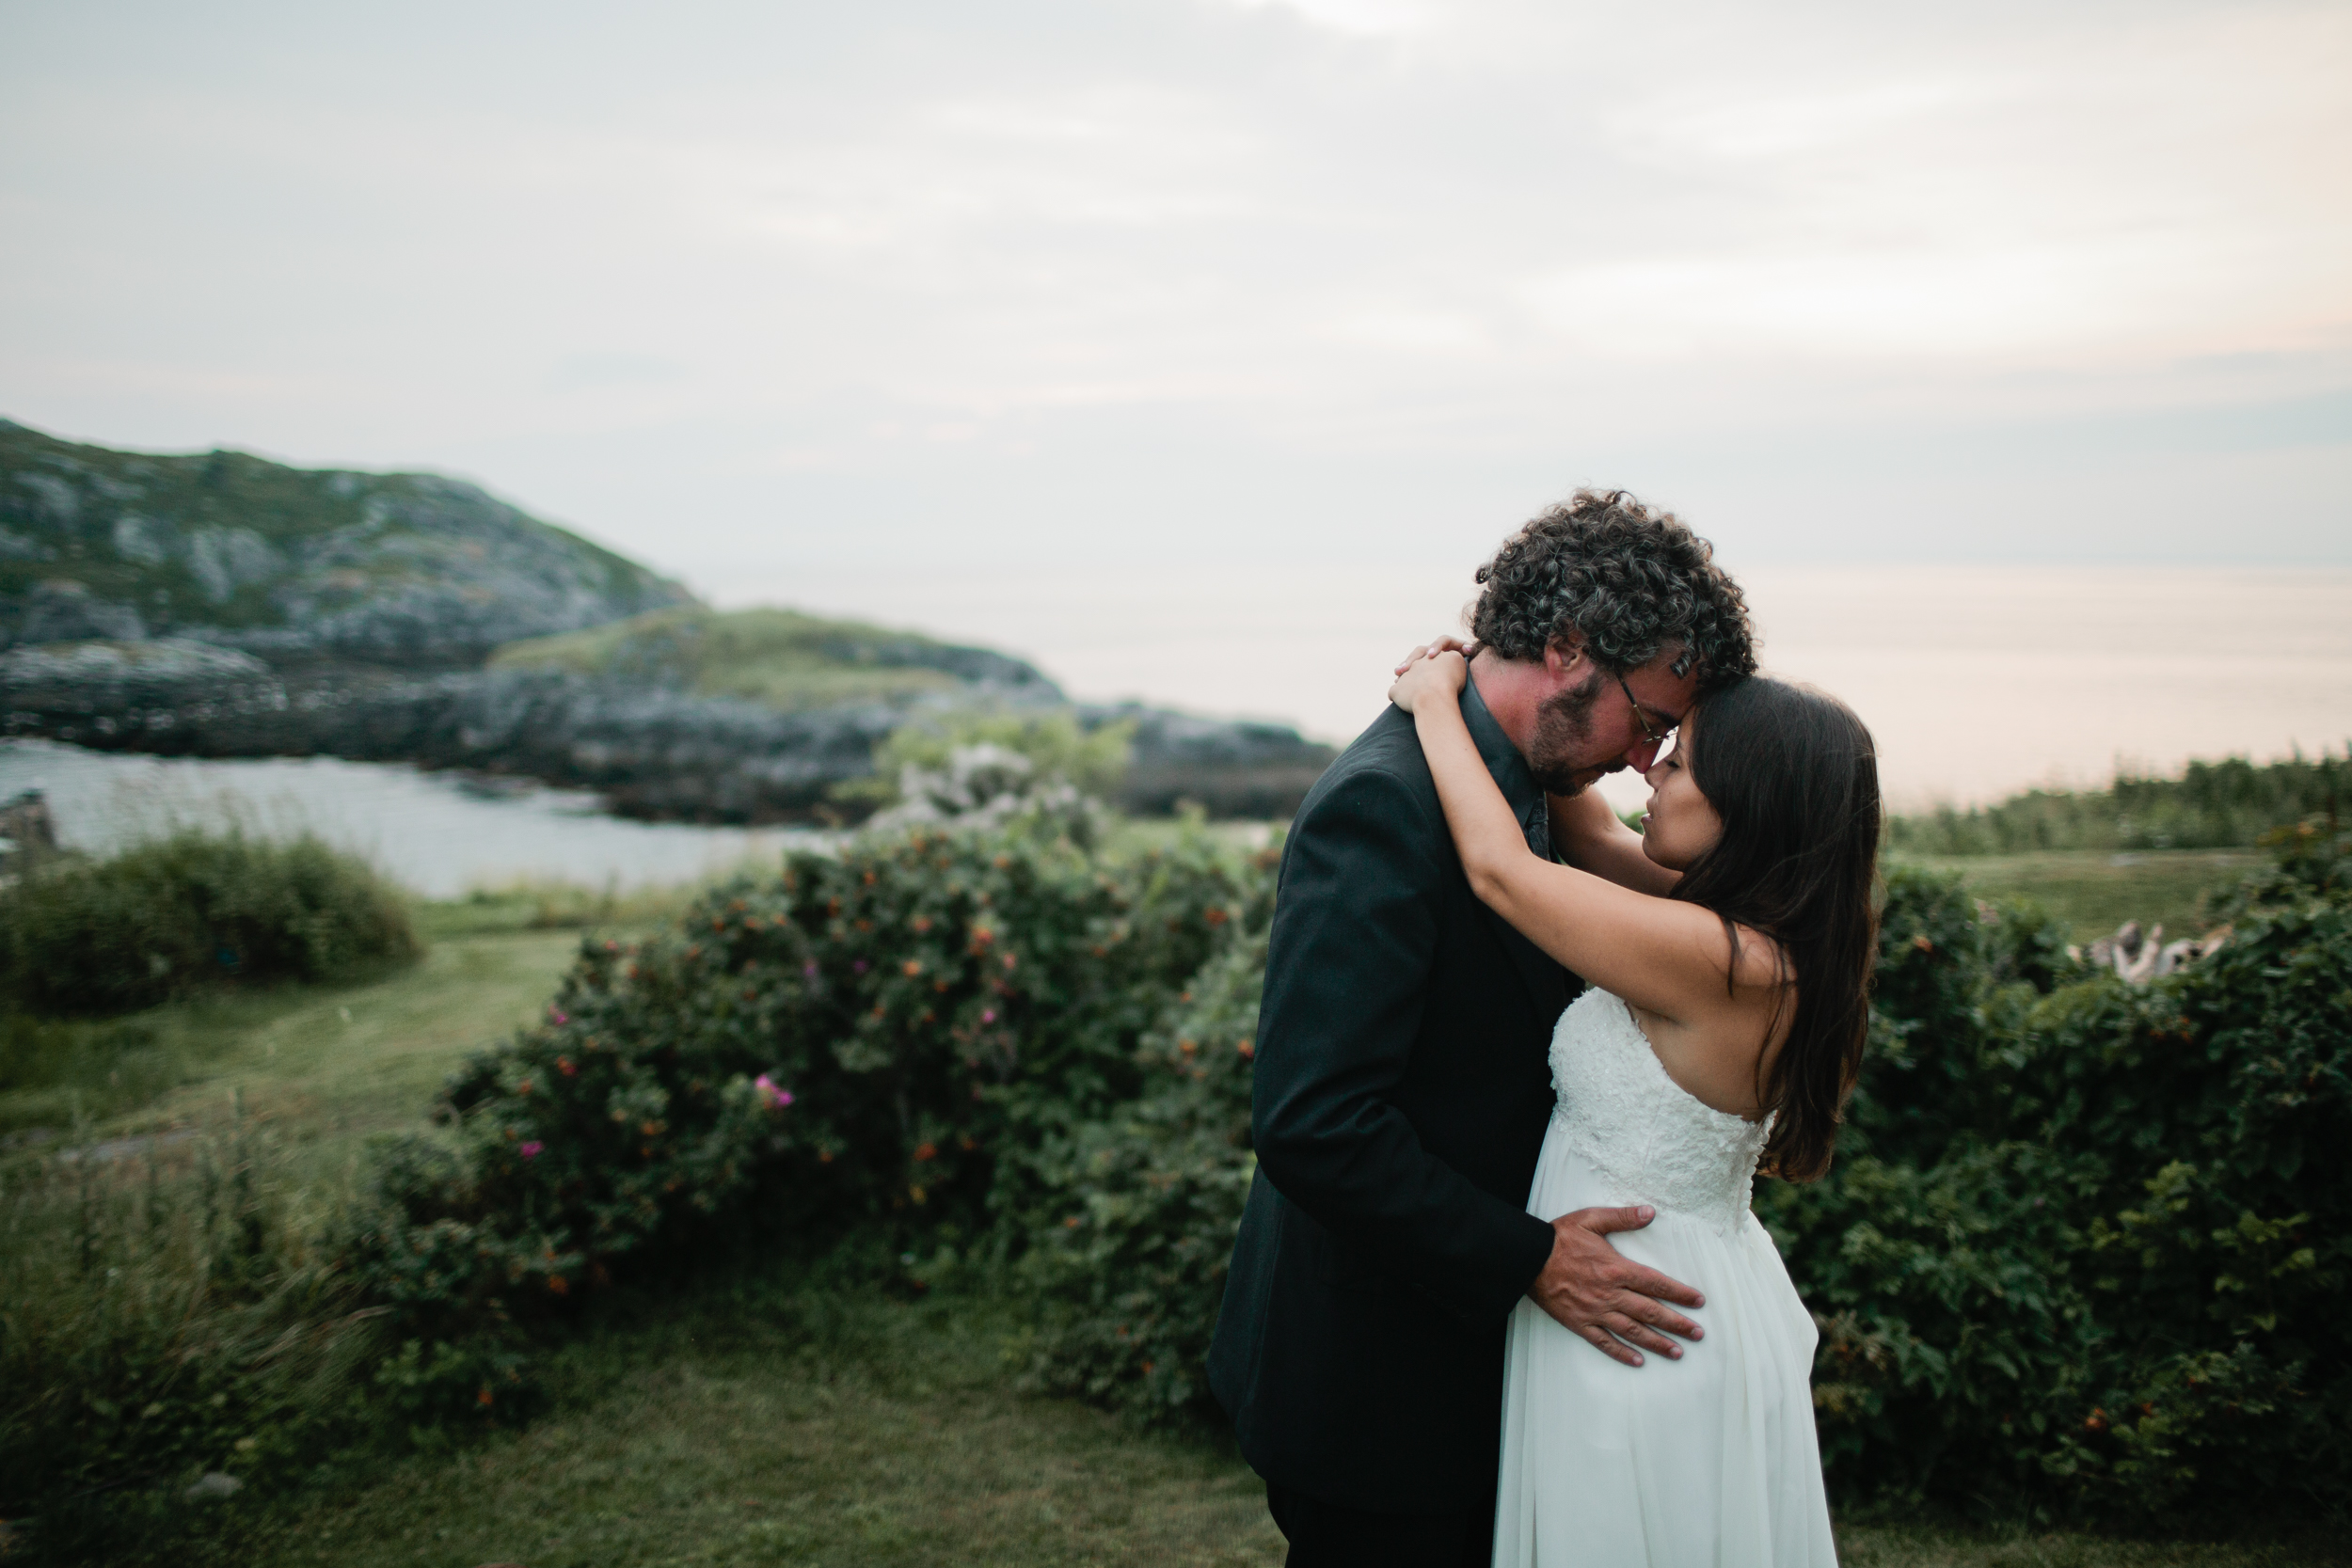 Monhegan-Island-Wedding-157.jpg